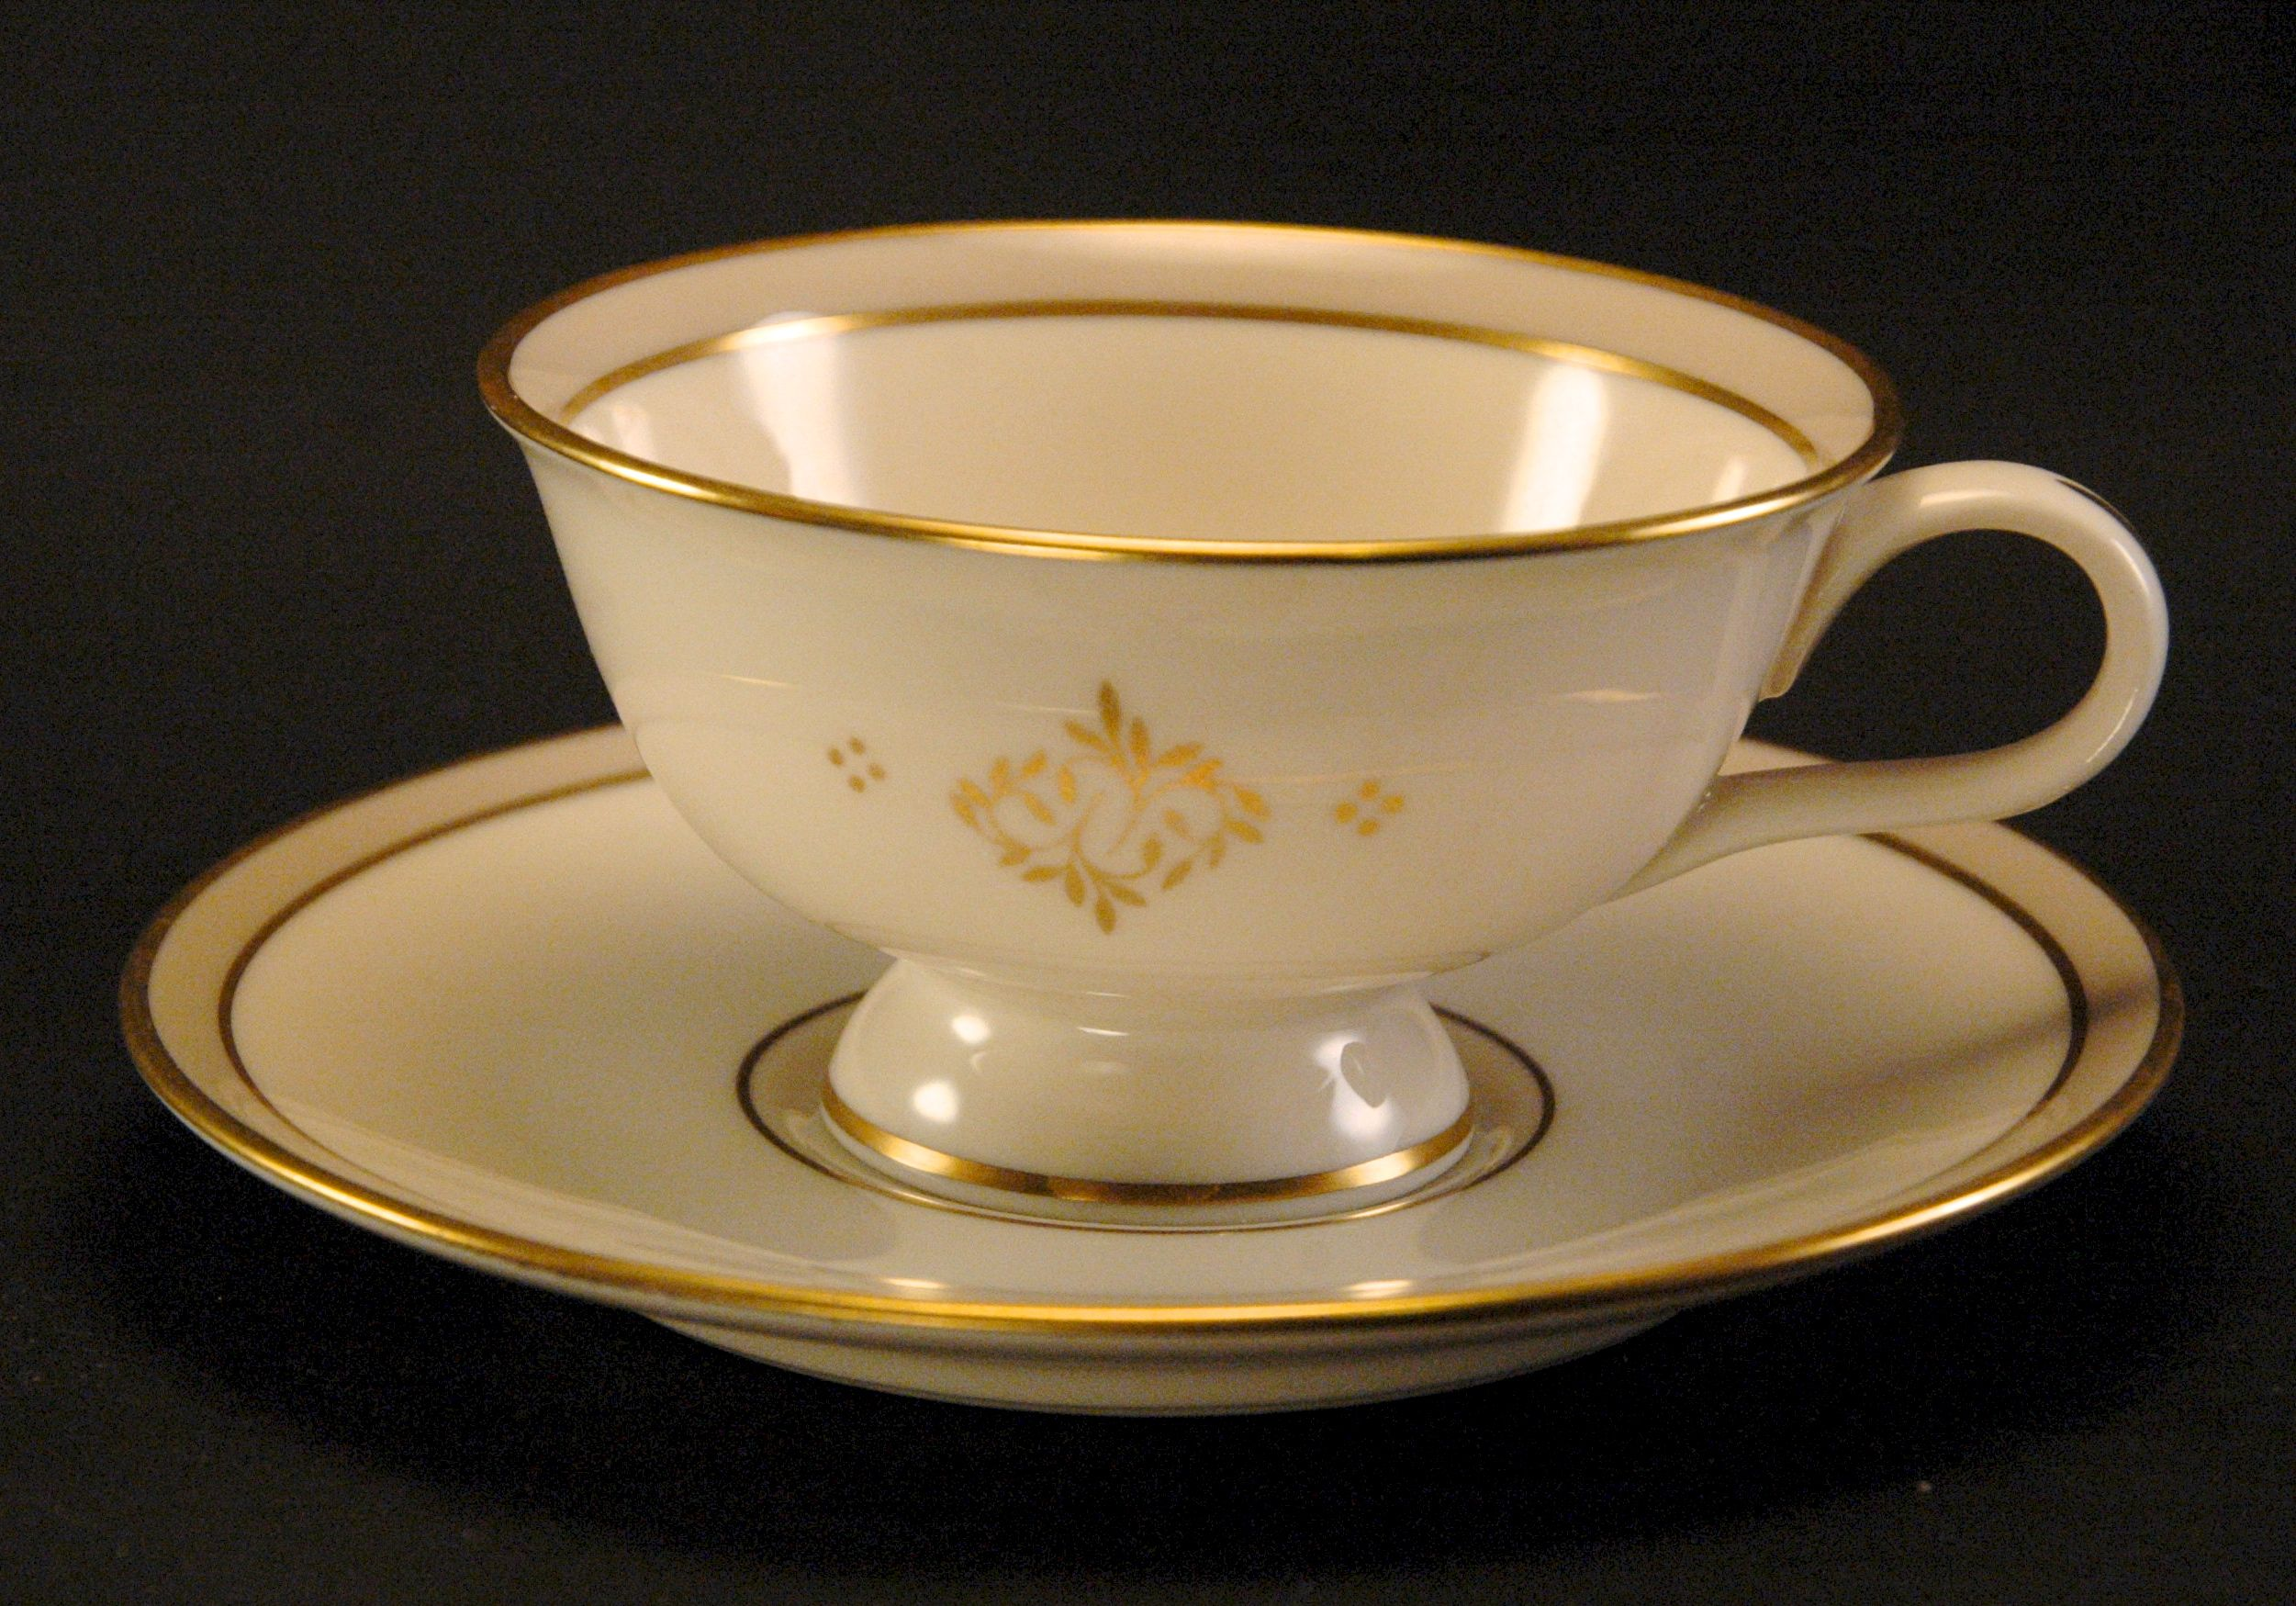 HAVILAND China ELYSEE Pattern Footed CUP & SAUCER Vintage For Sale ...